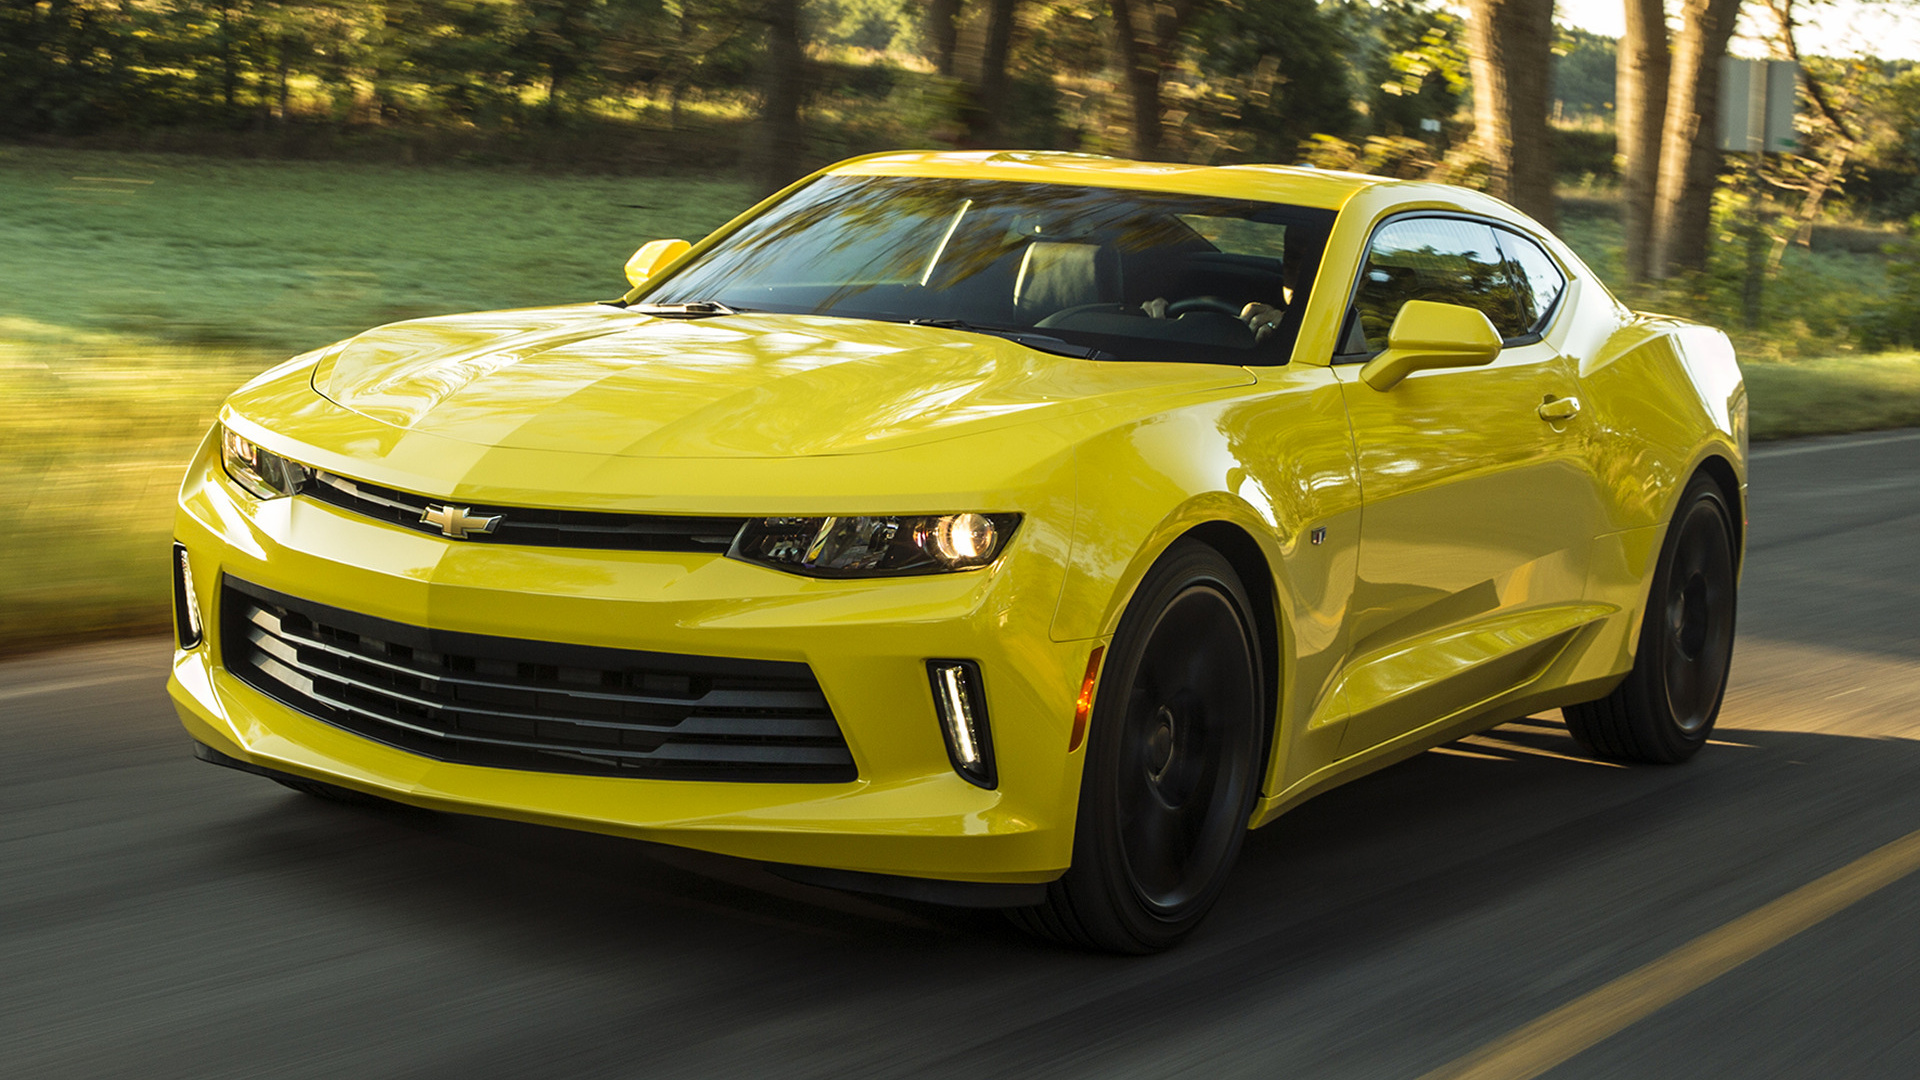 2016 Chevrolet Camaro - Wallpapers and HD Images | Car Pixel